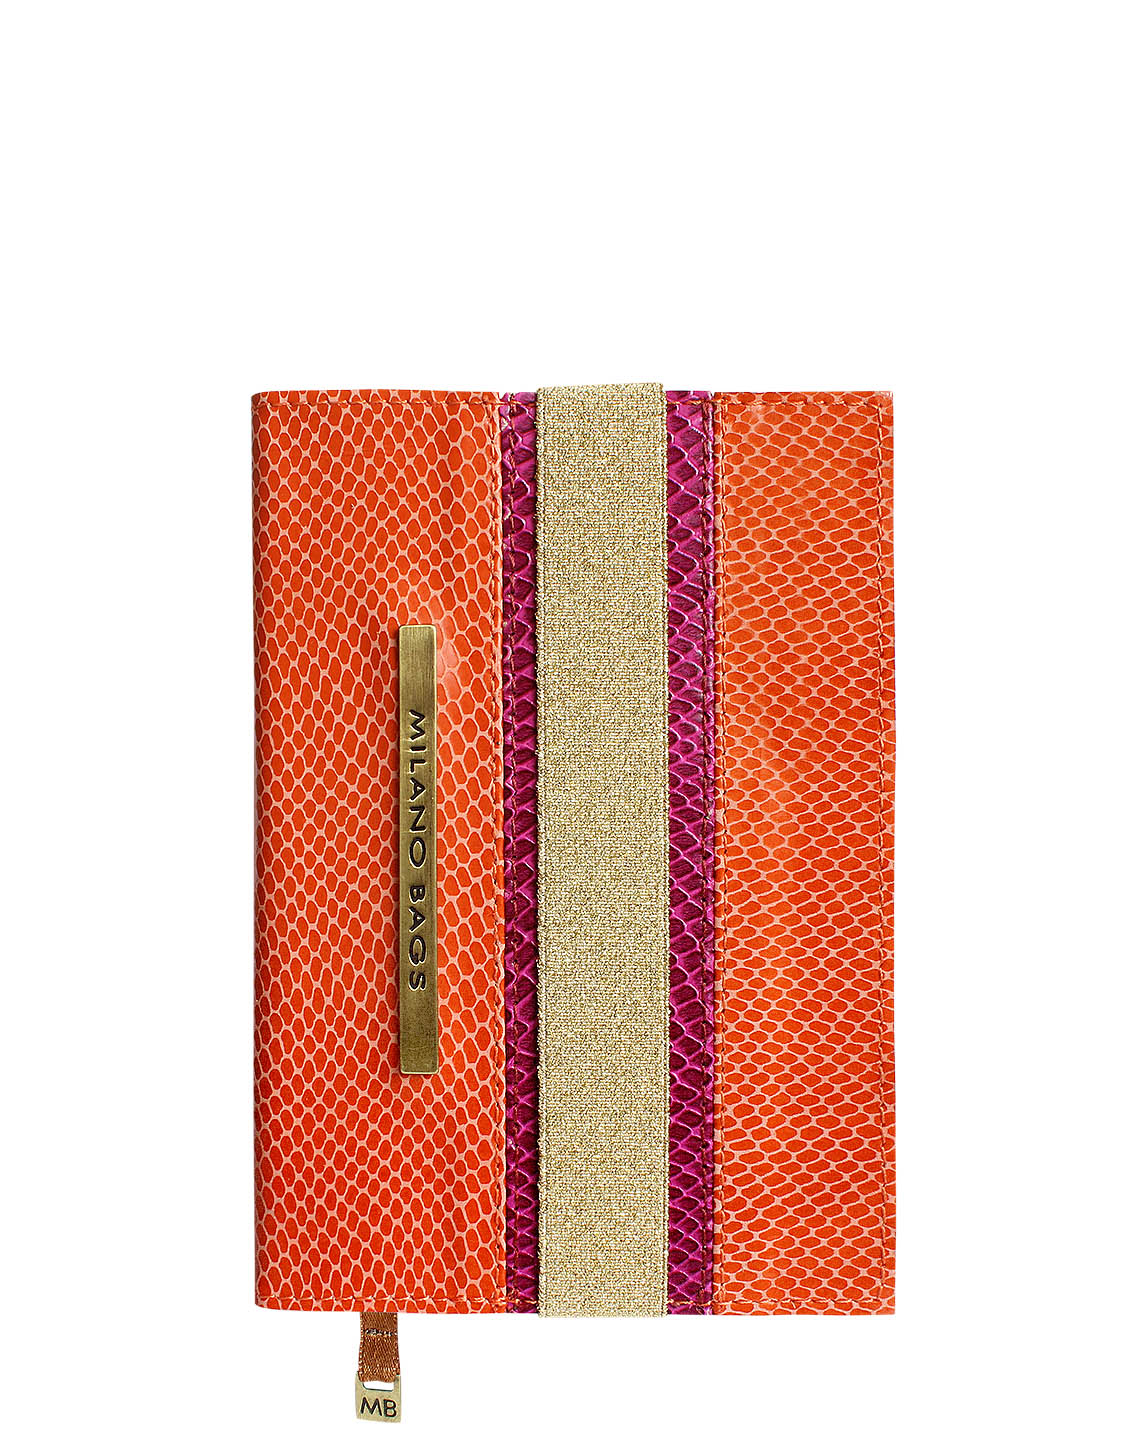 Agenda AG-119 Color Naranja